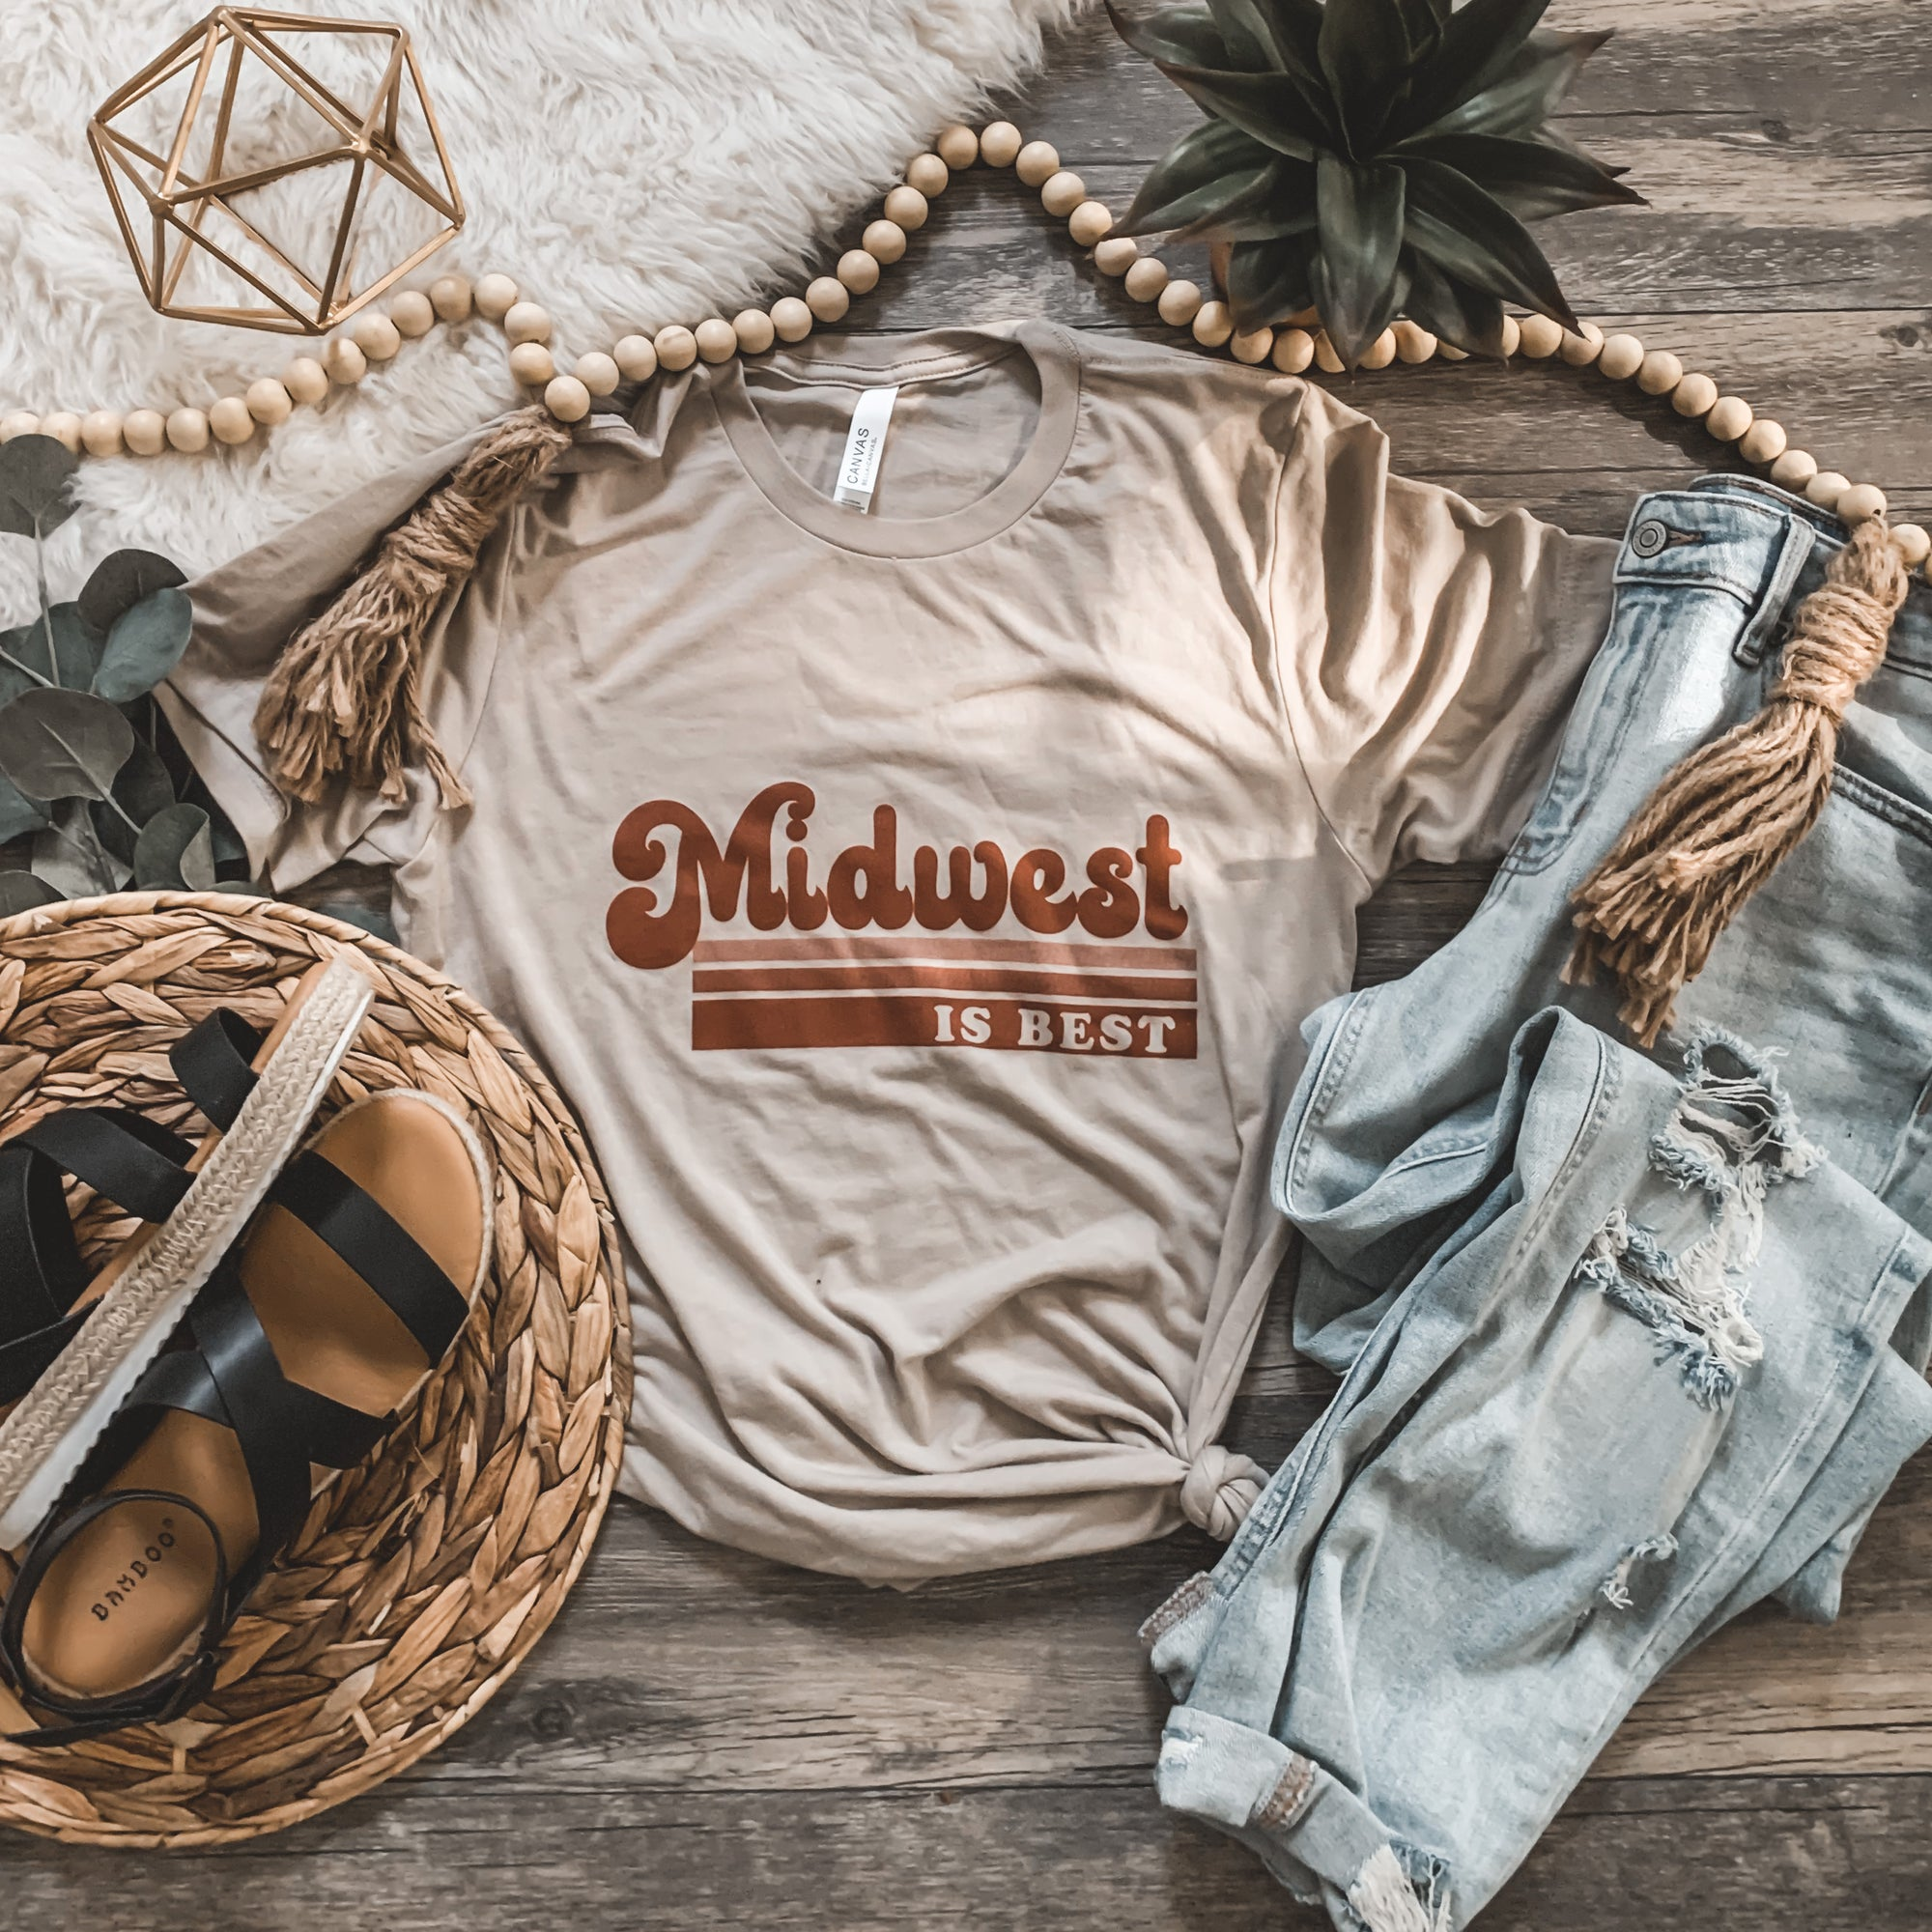 """Midwest is Best"" Graphic Tee in Tan - Rosebud's Tees"